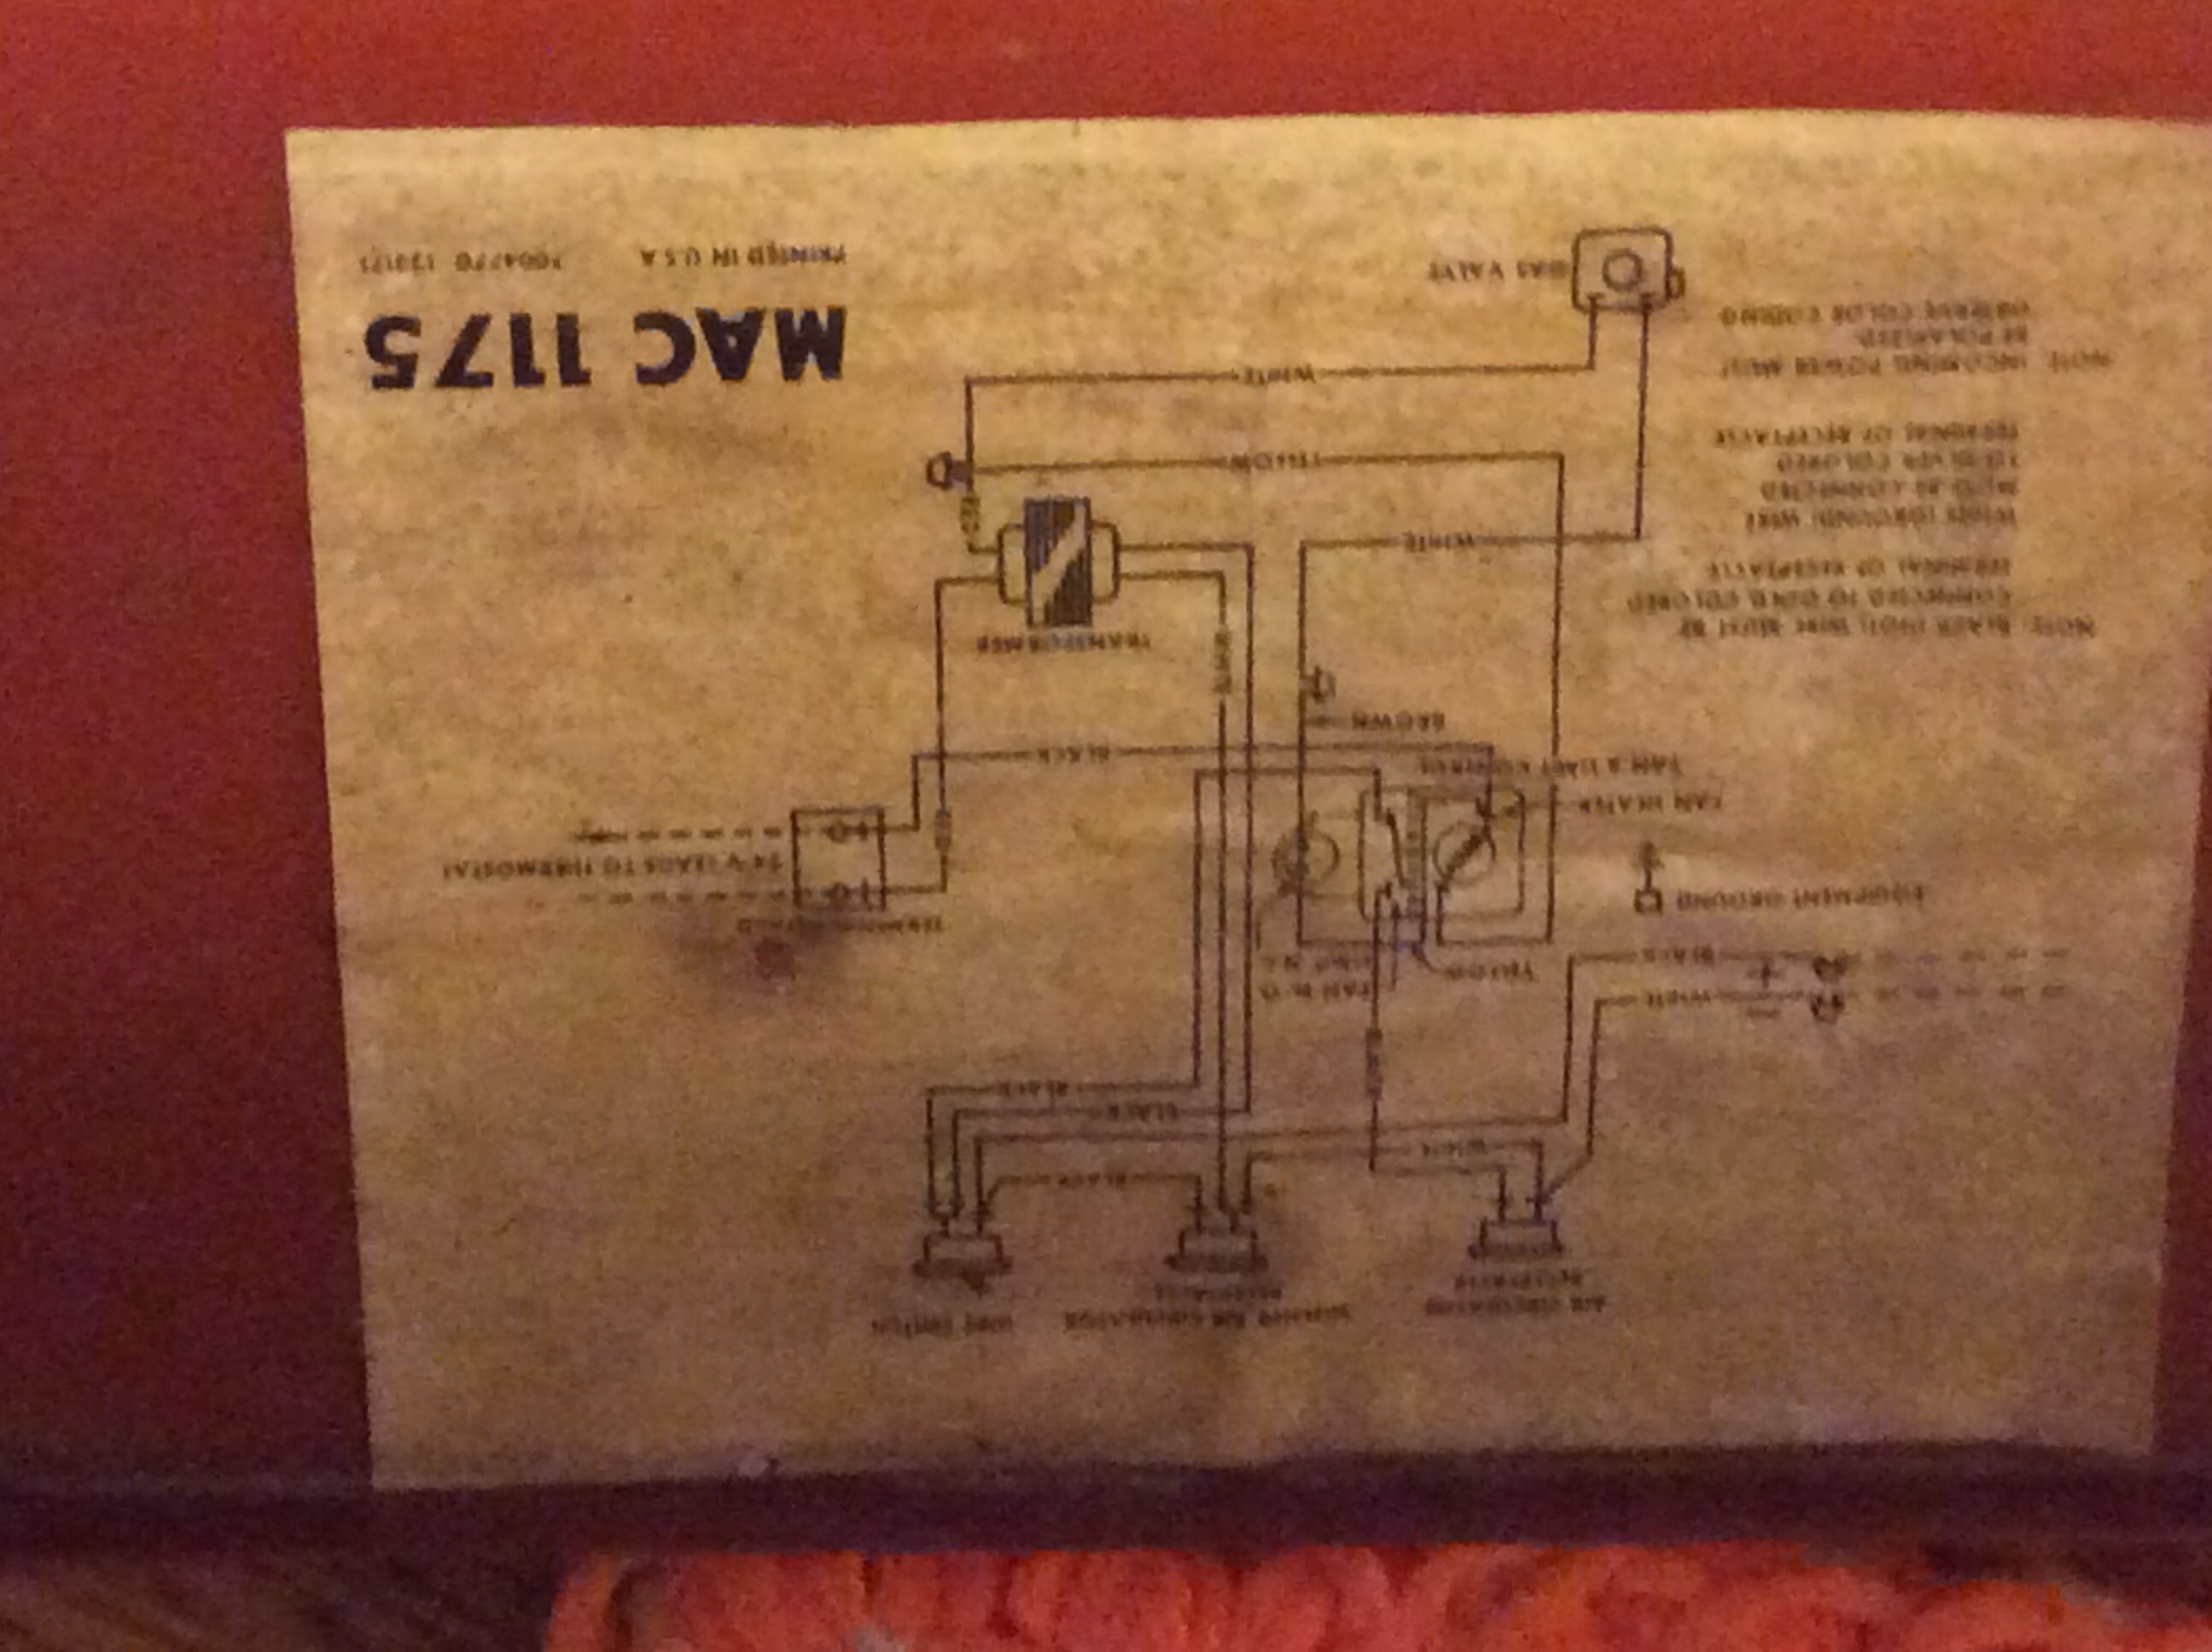 Pilot Lit Intertherm Mac 1175 Mobilhome Propane First Time Of Year Control Valve Wiring Diagram Image